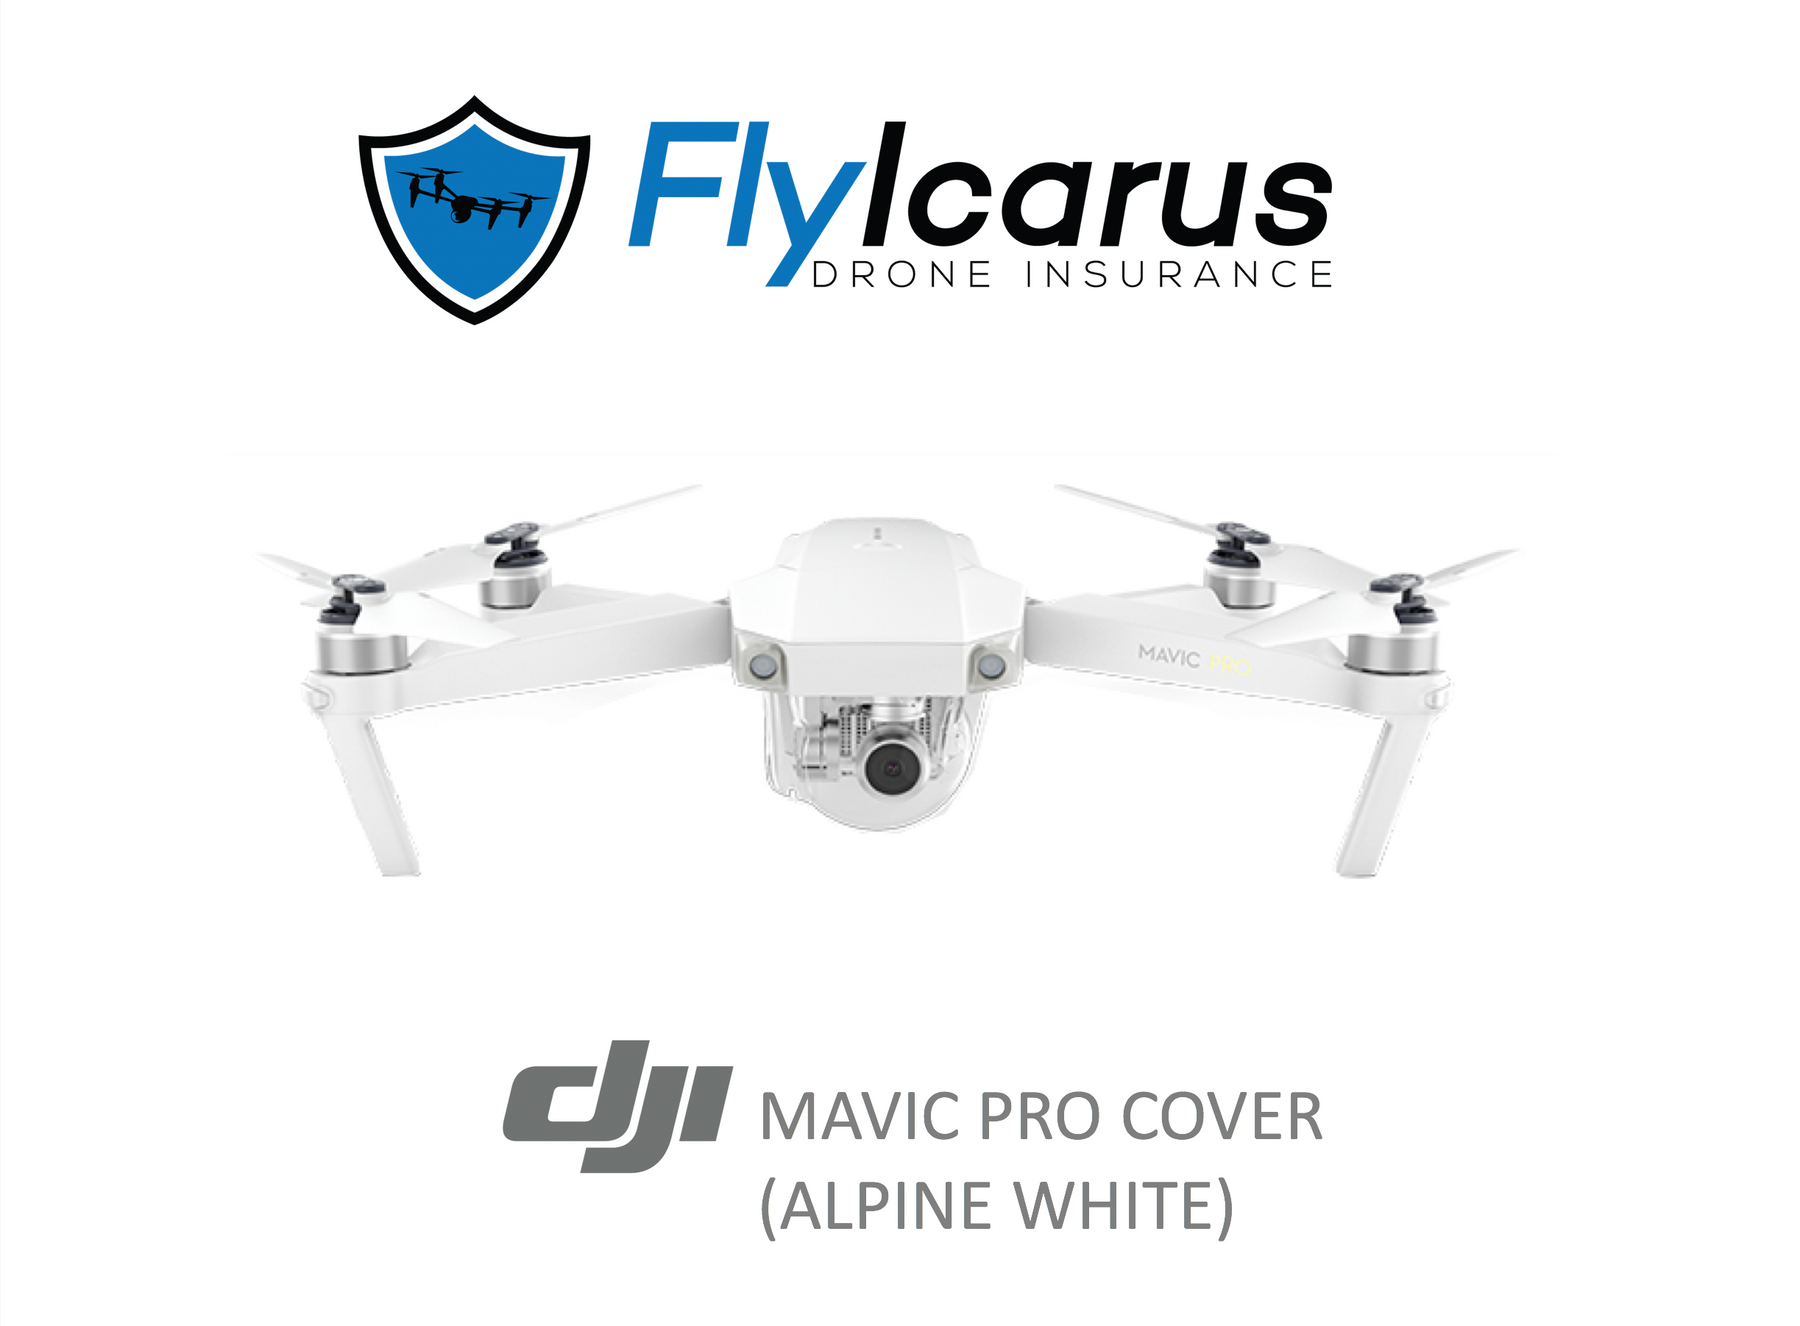 DJI Mavic Pro (Alpine White) Hobby Drone Insurance - Annual Cover - FlyIcarus Drone Insurance